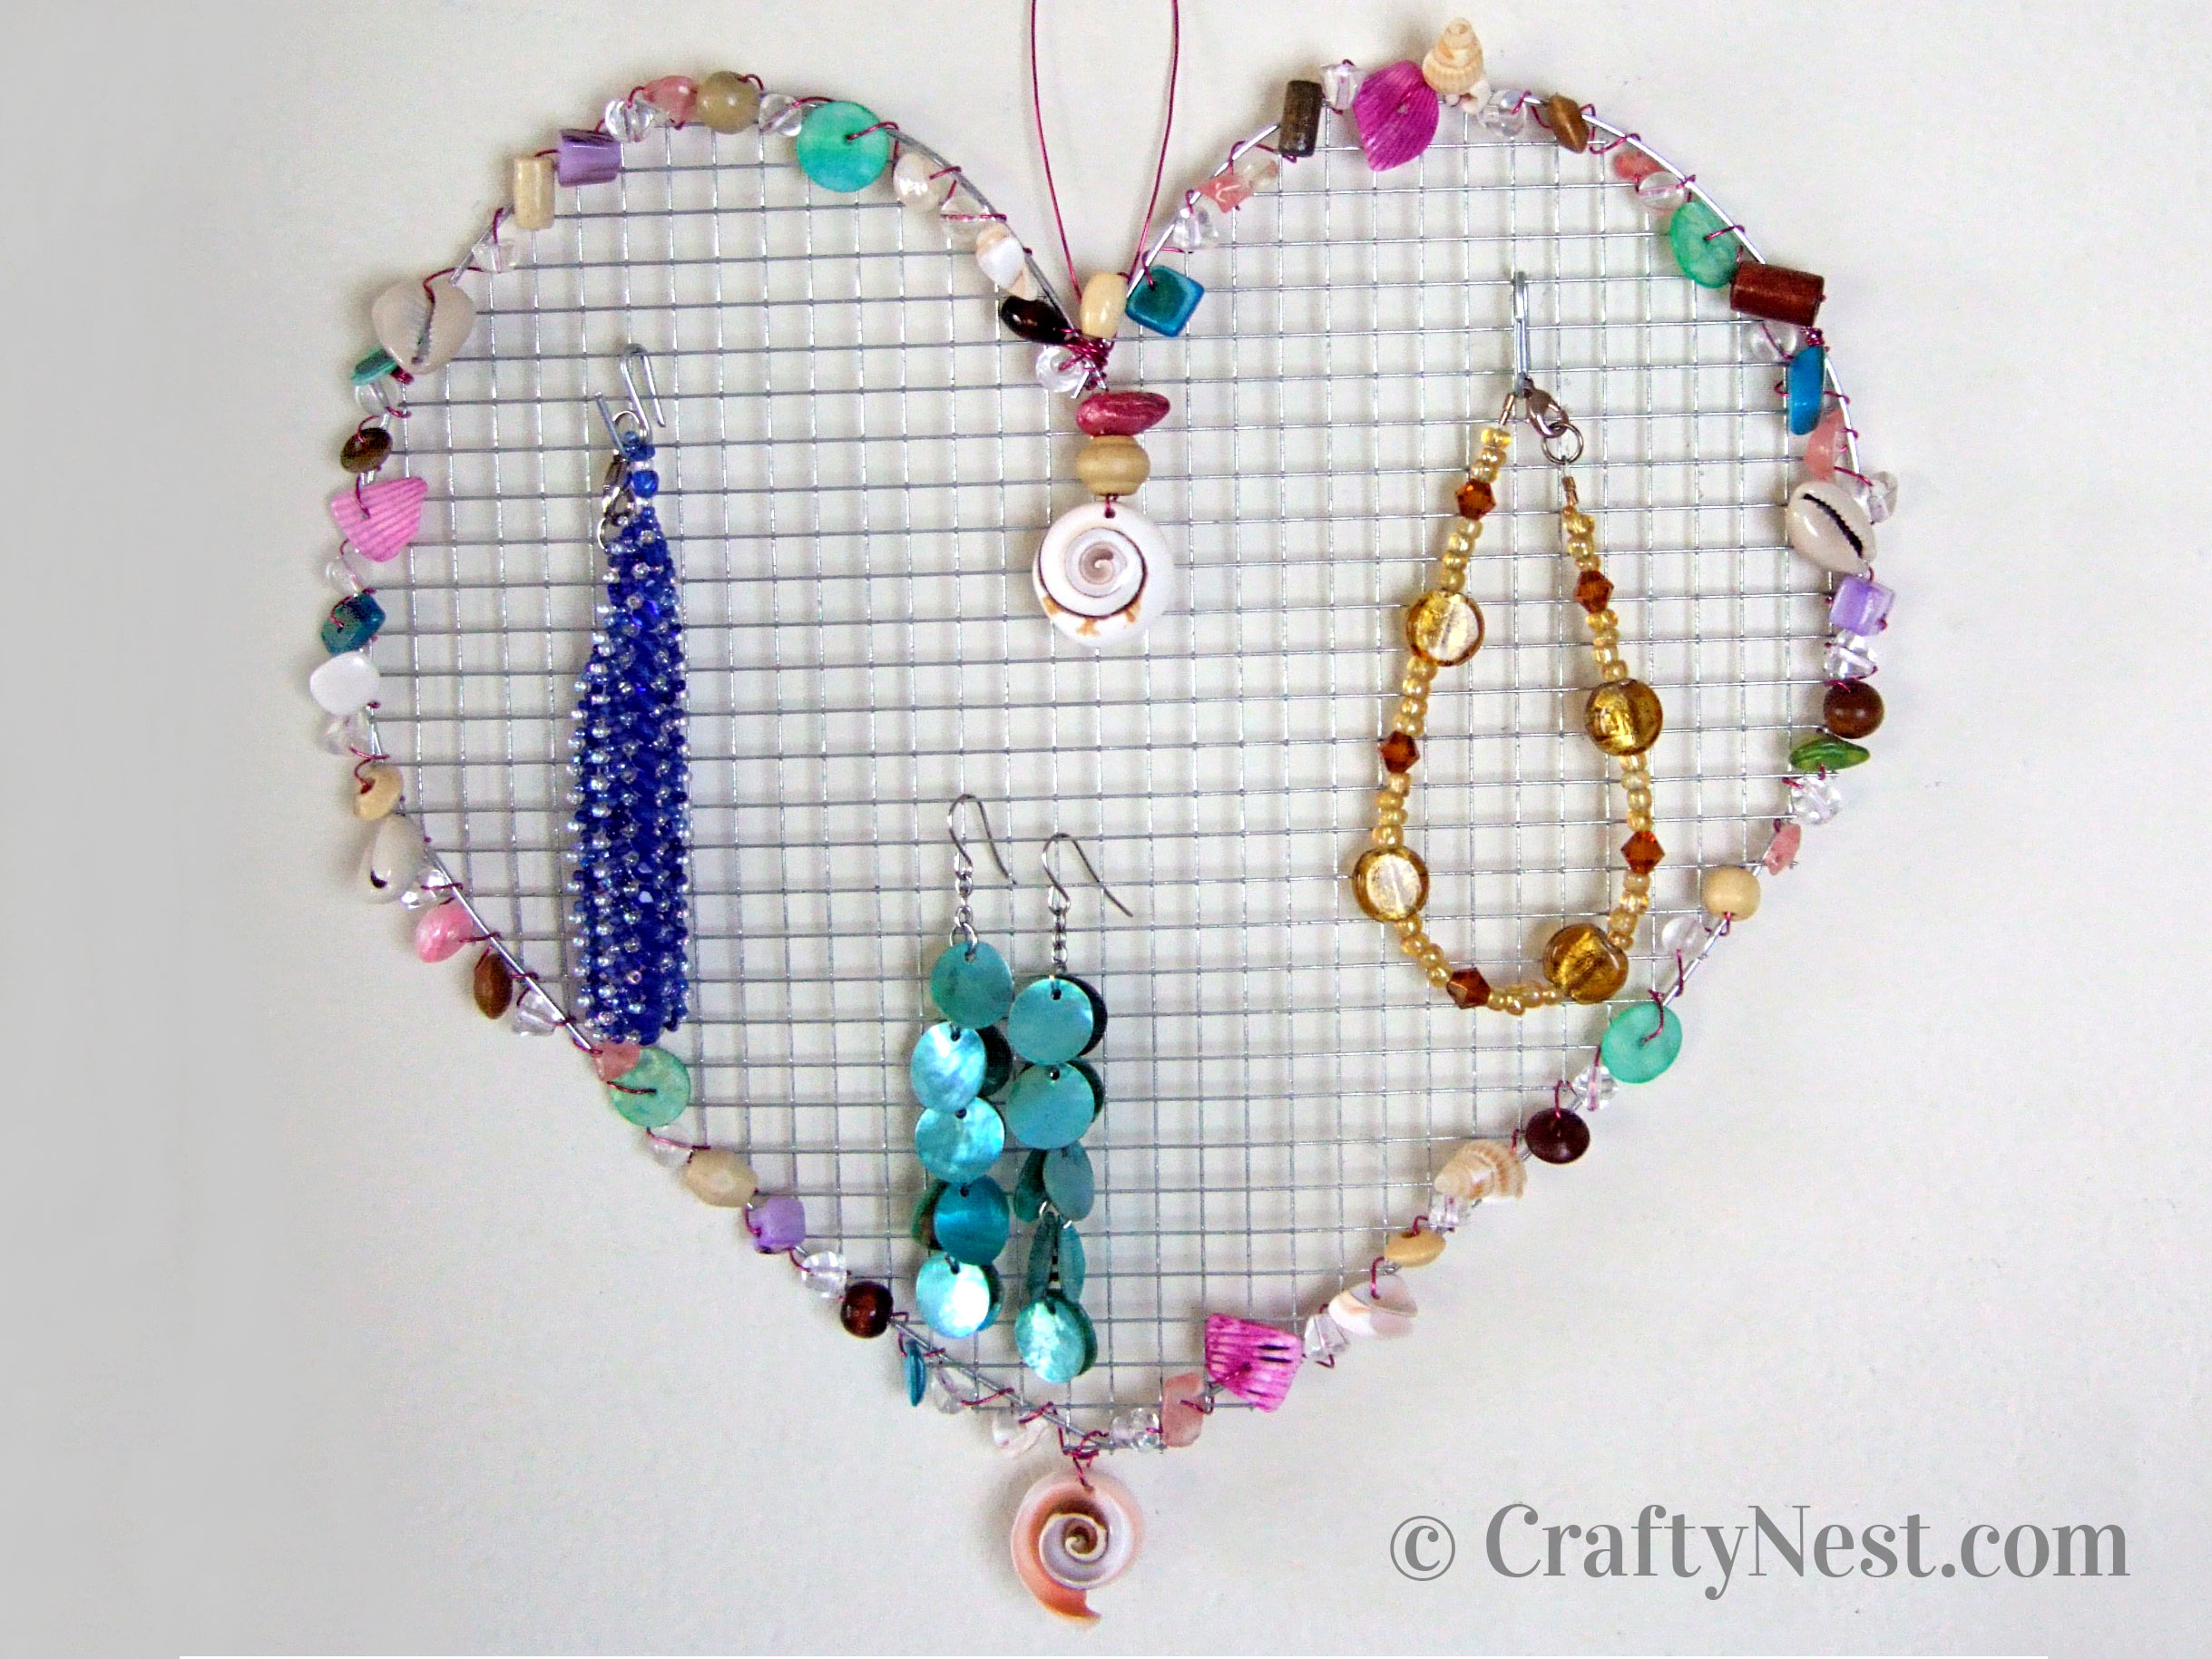 Heart-shaped wire jewelry holder with beads, photo